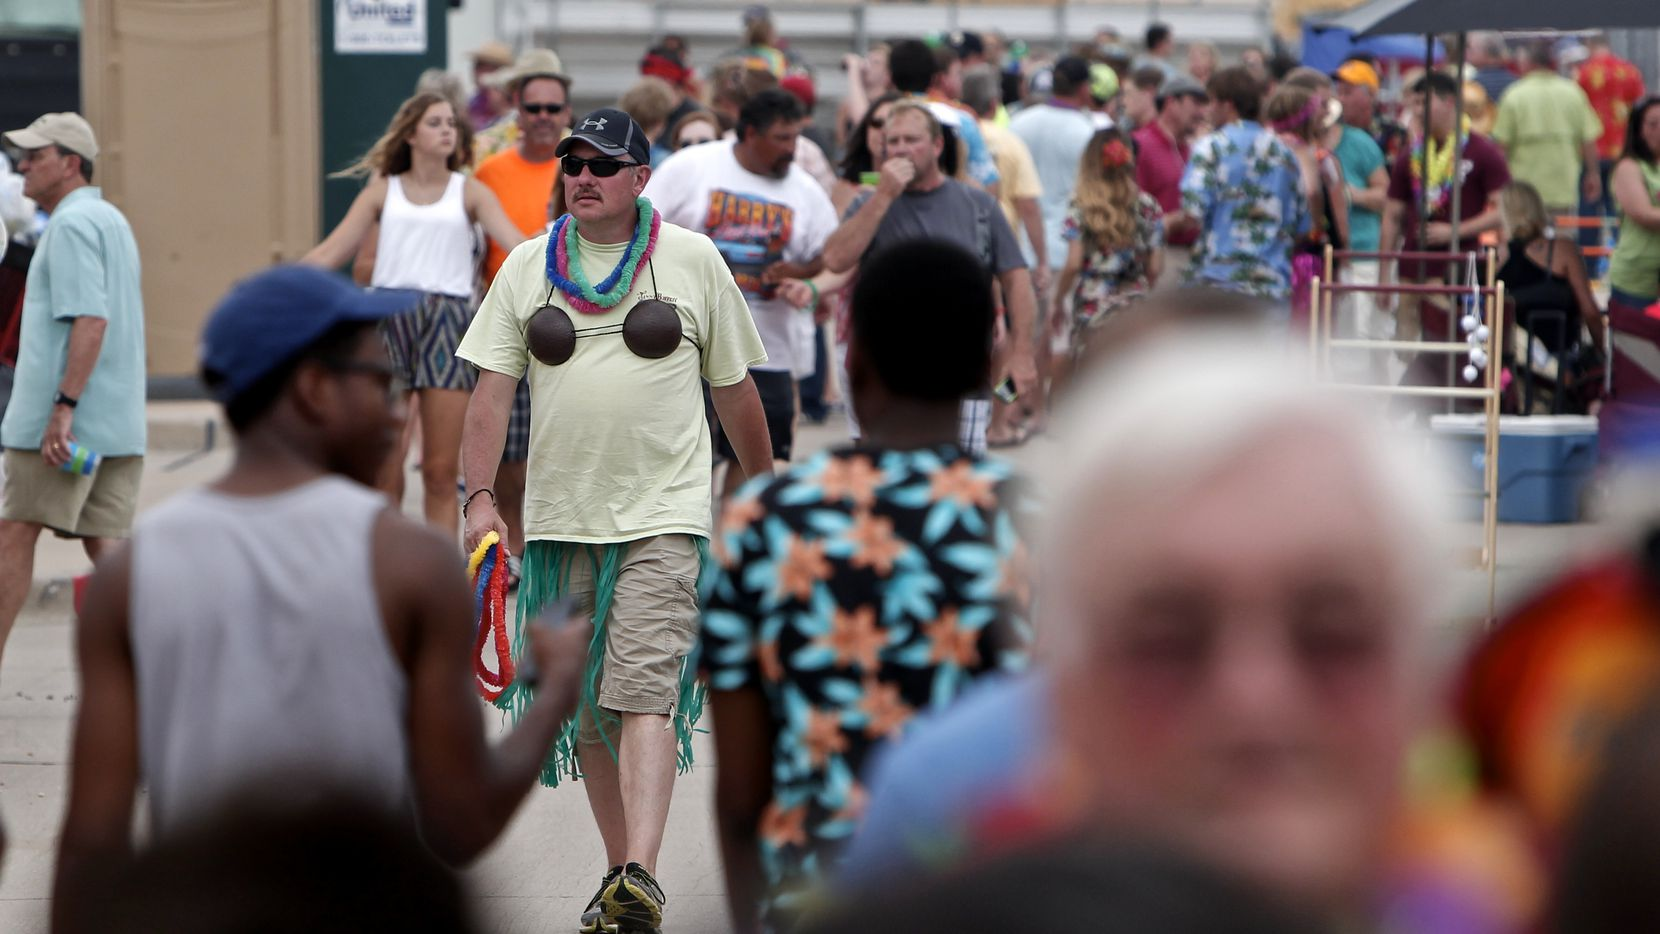 Kent Stagg sports a coconut bra like it ain't no thang at a Jimmy Buffett concert.